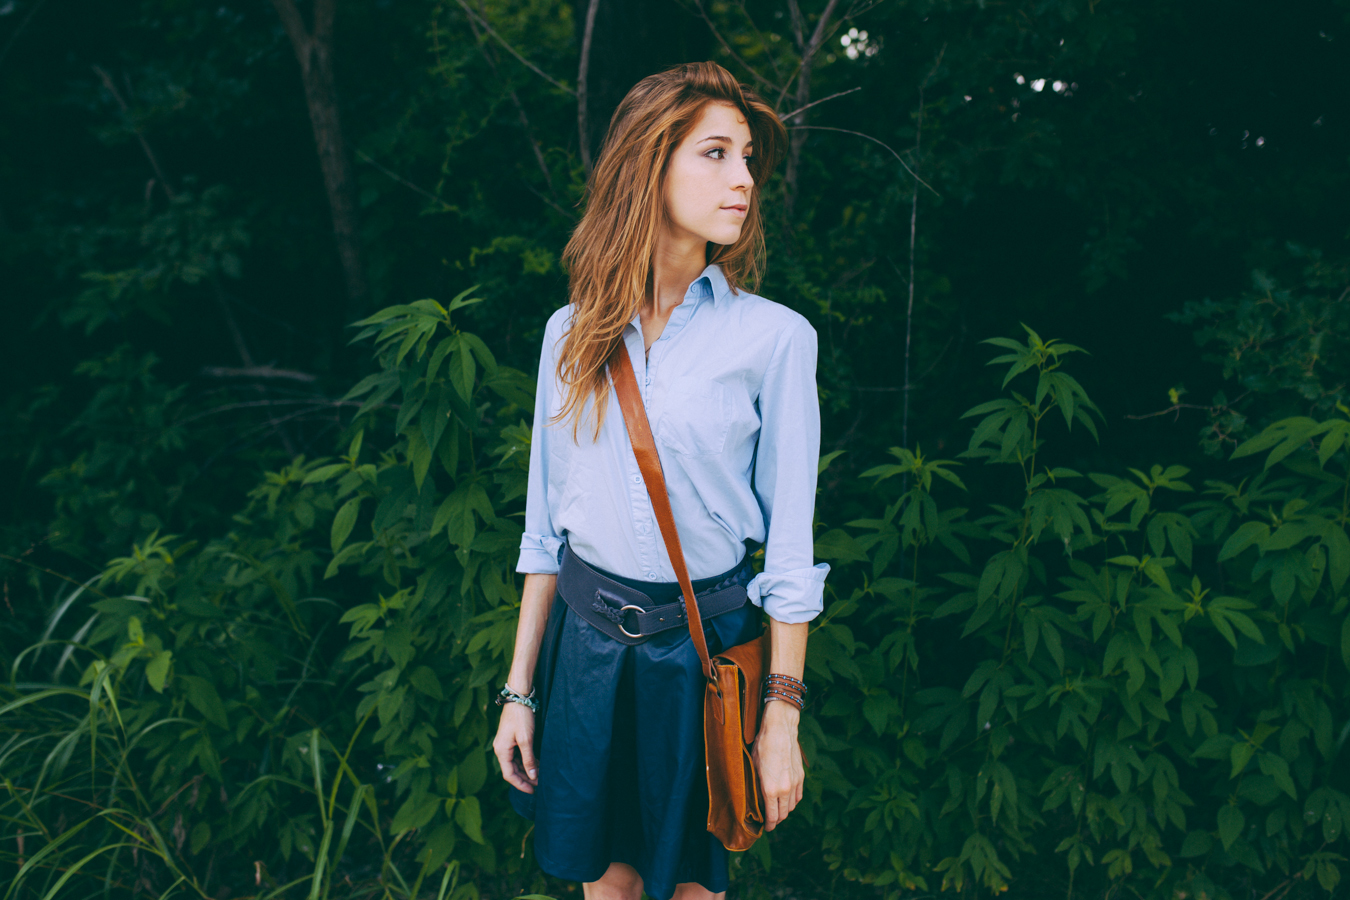 Blue Blouse + Leather Skirt + Bag